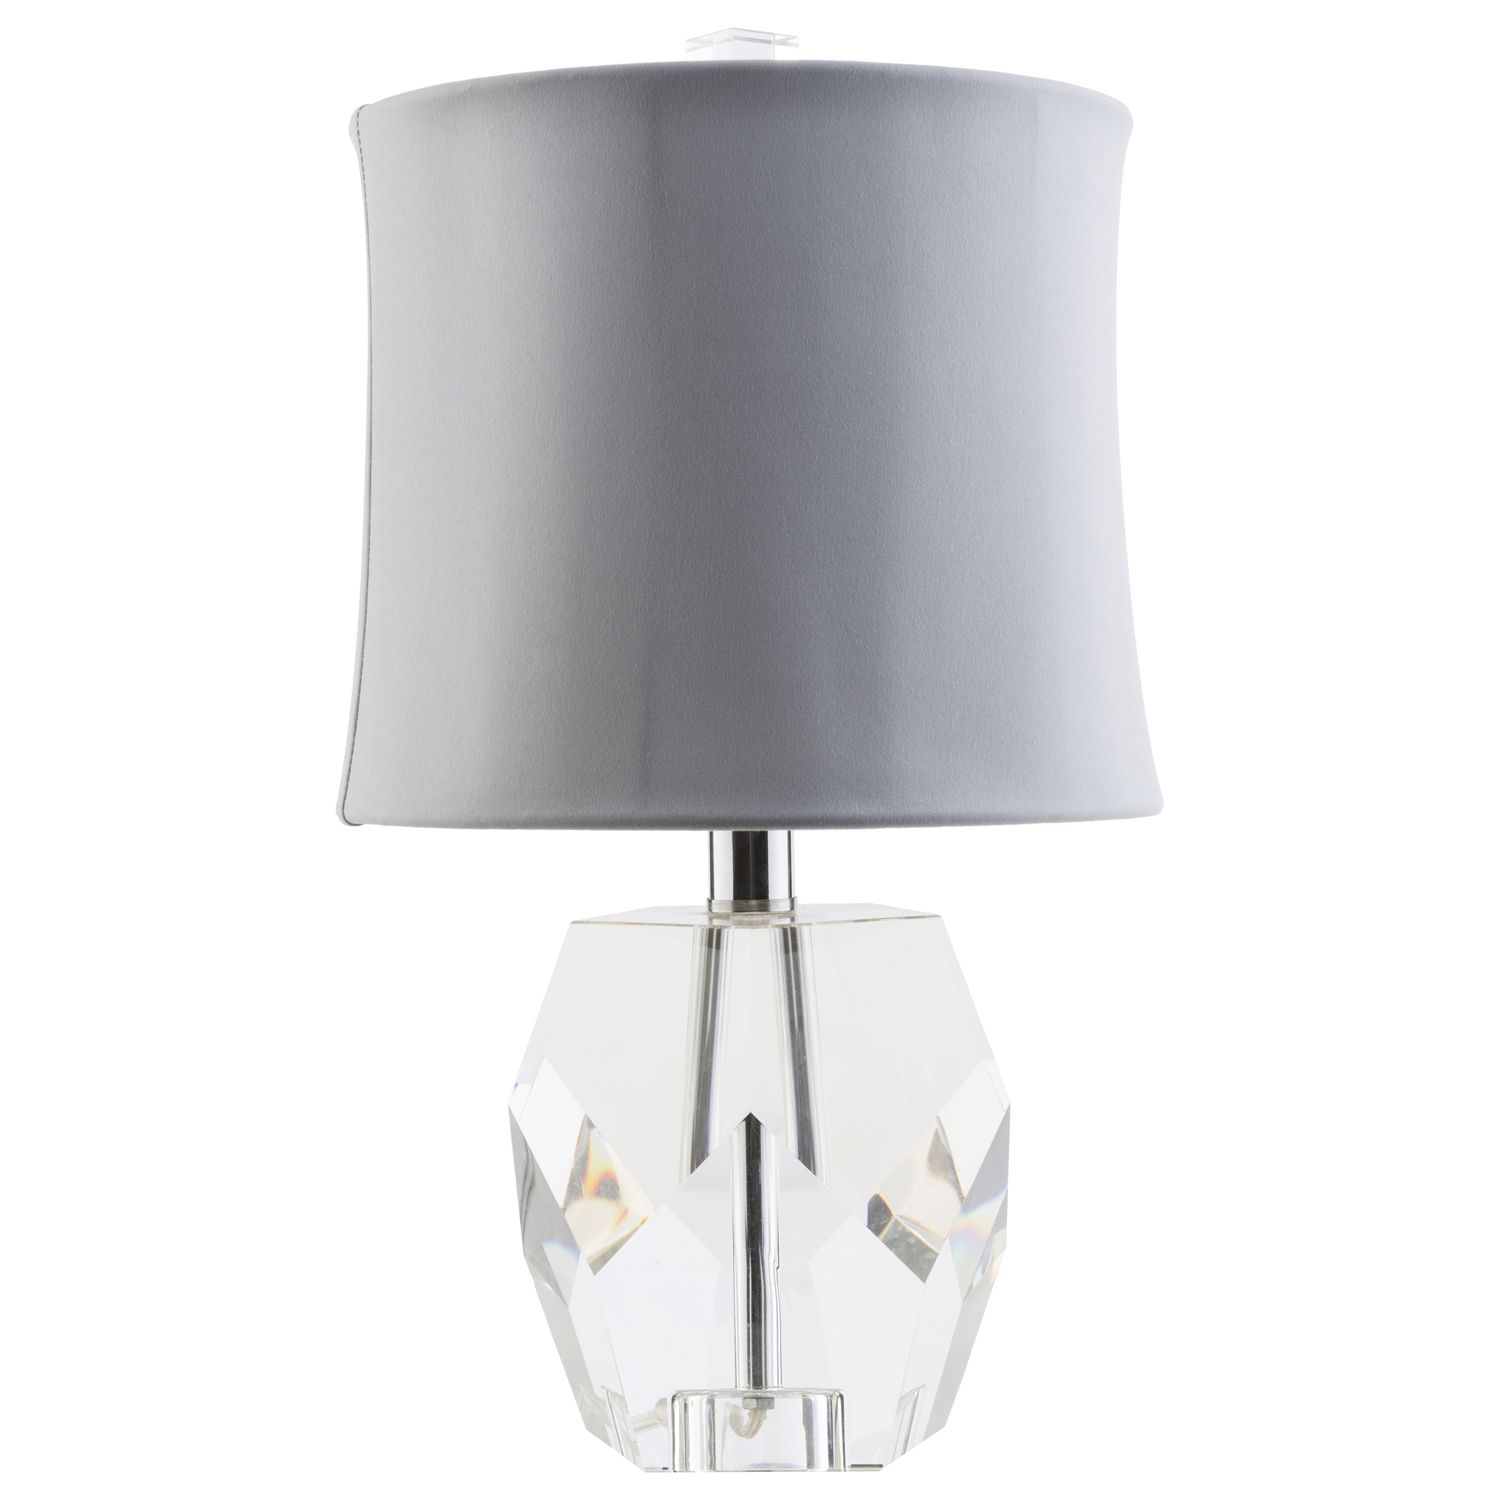 Surya Miramar Table Lamp @Zinc_Door